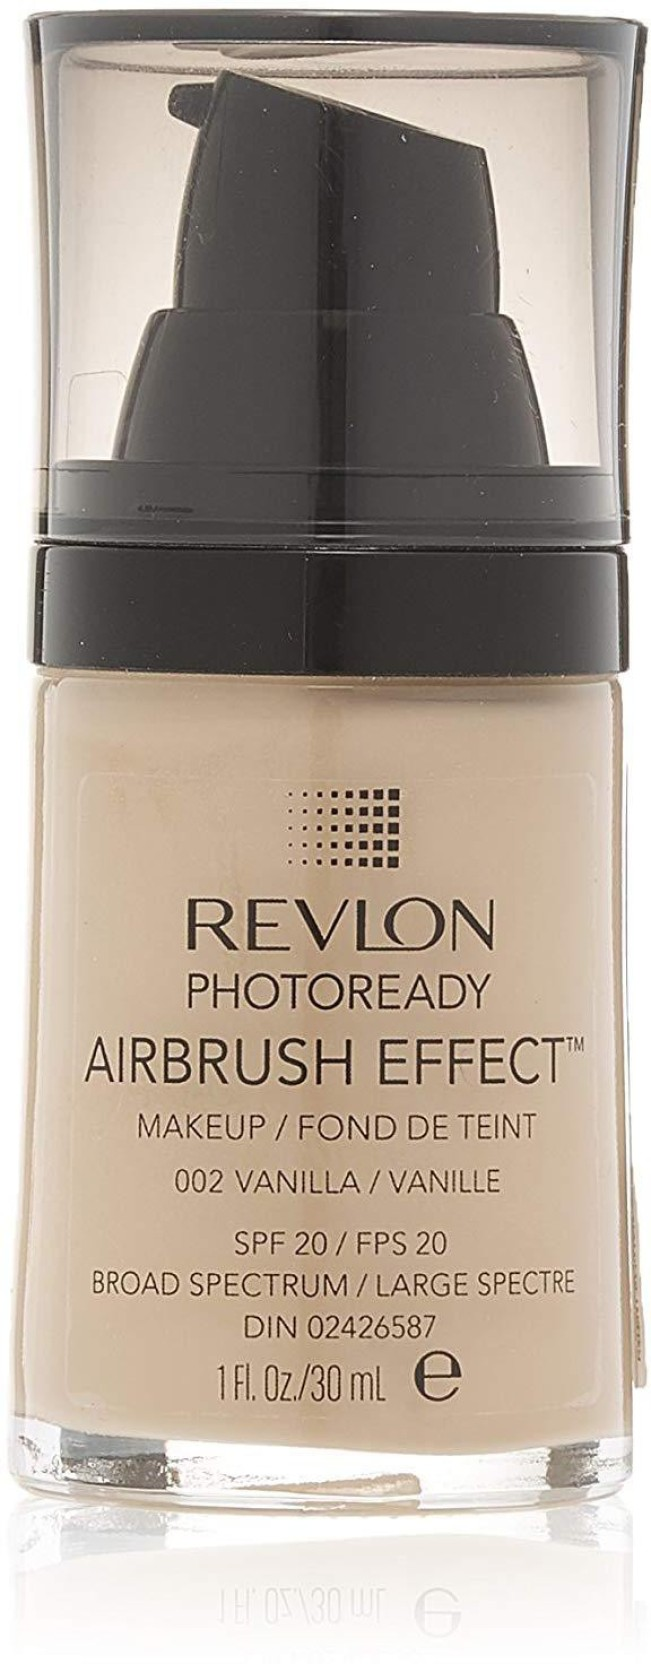 Revlon Photoready Airbrush Effect Makeup Foundation Price In India